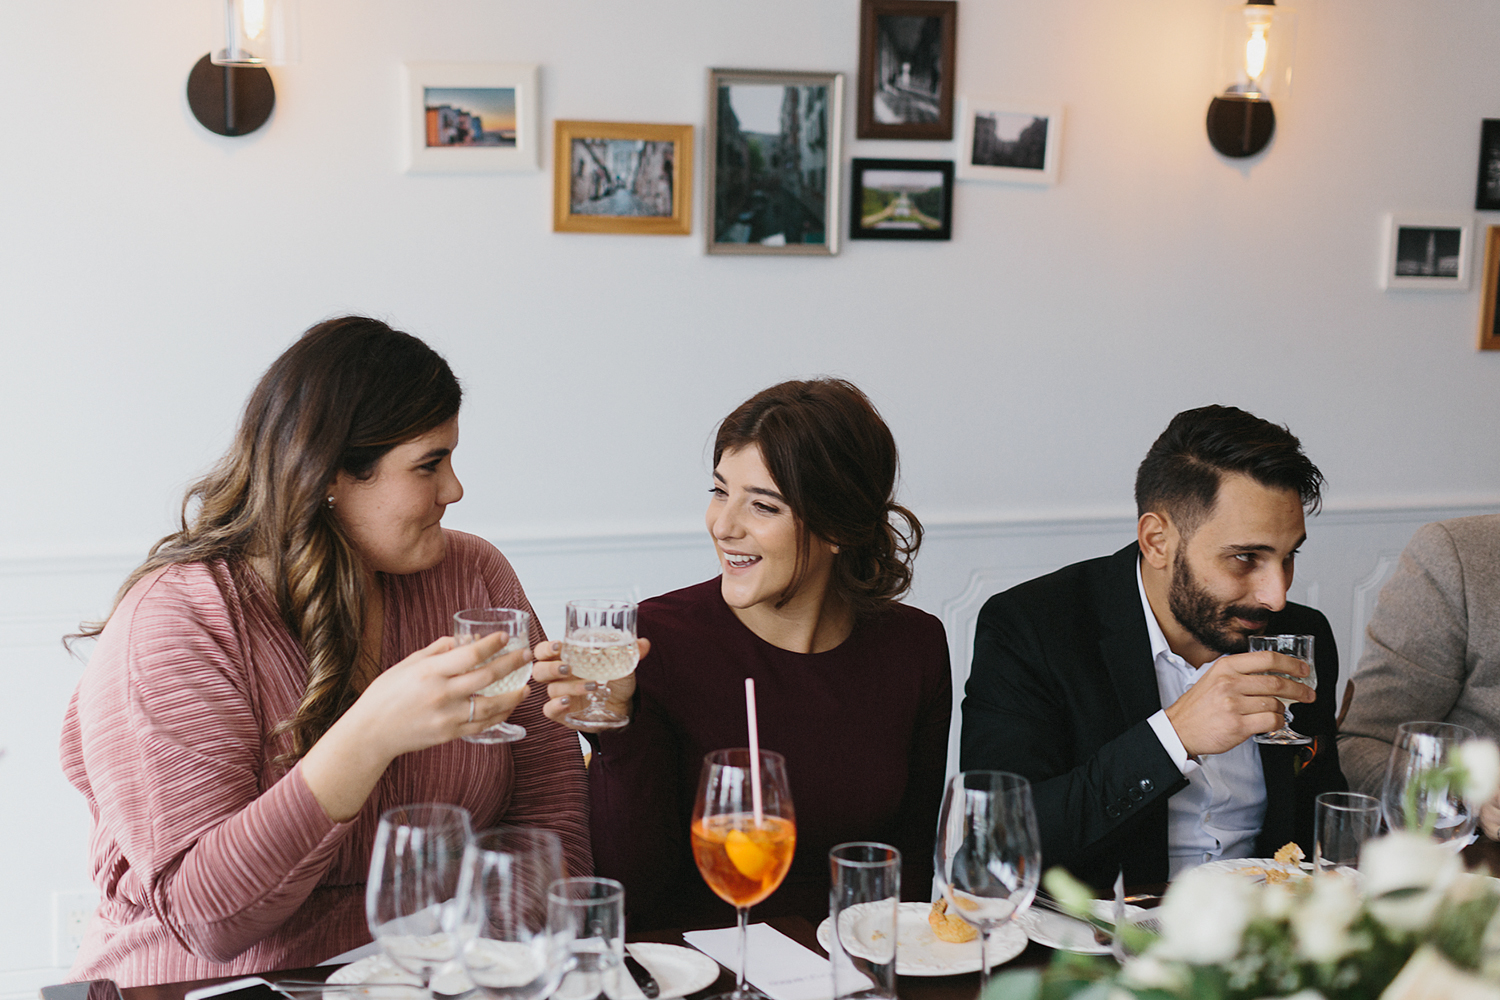 toronto-restaurant-elopement-intimate-wedding--bride-and-sister-guests-cheers-toast.jpg